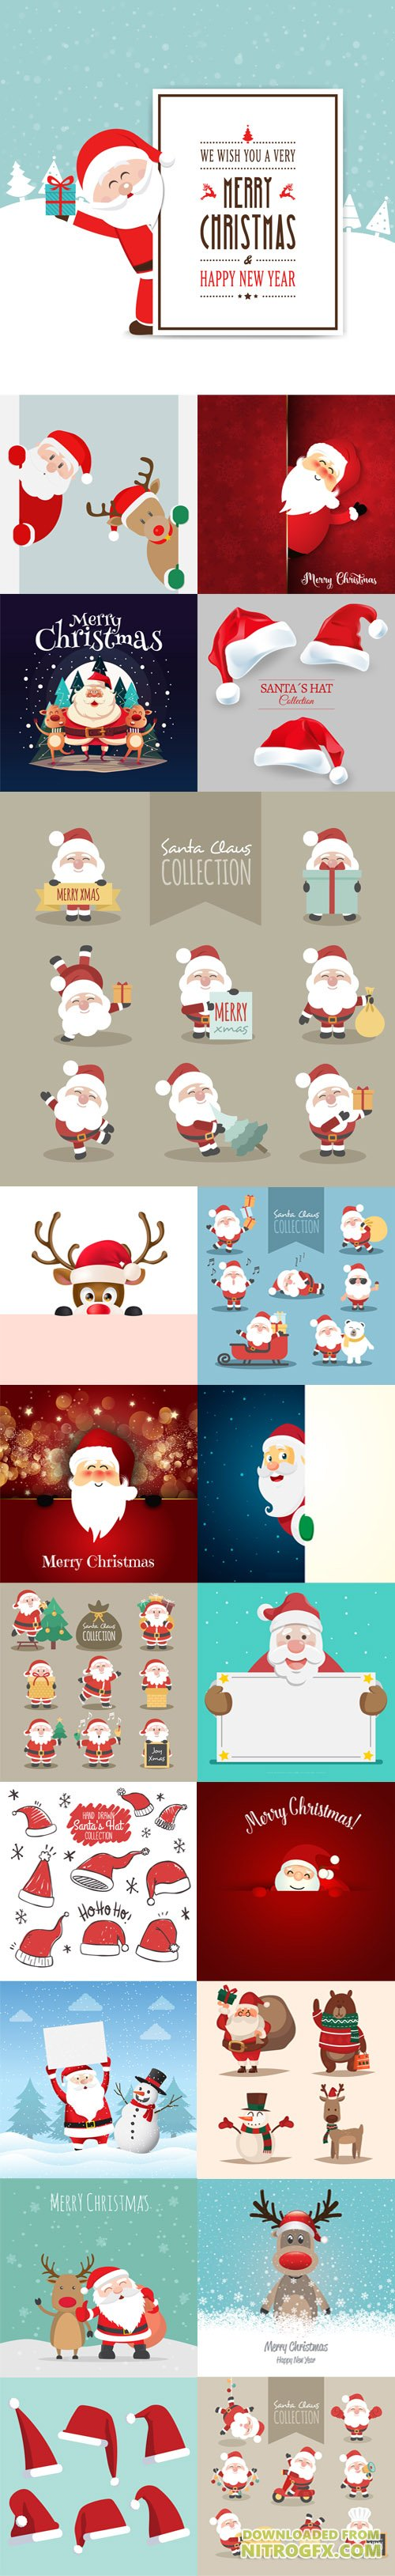 Lovely Christmas Characters Collection in Vector